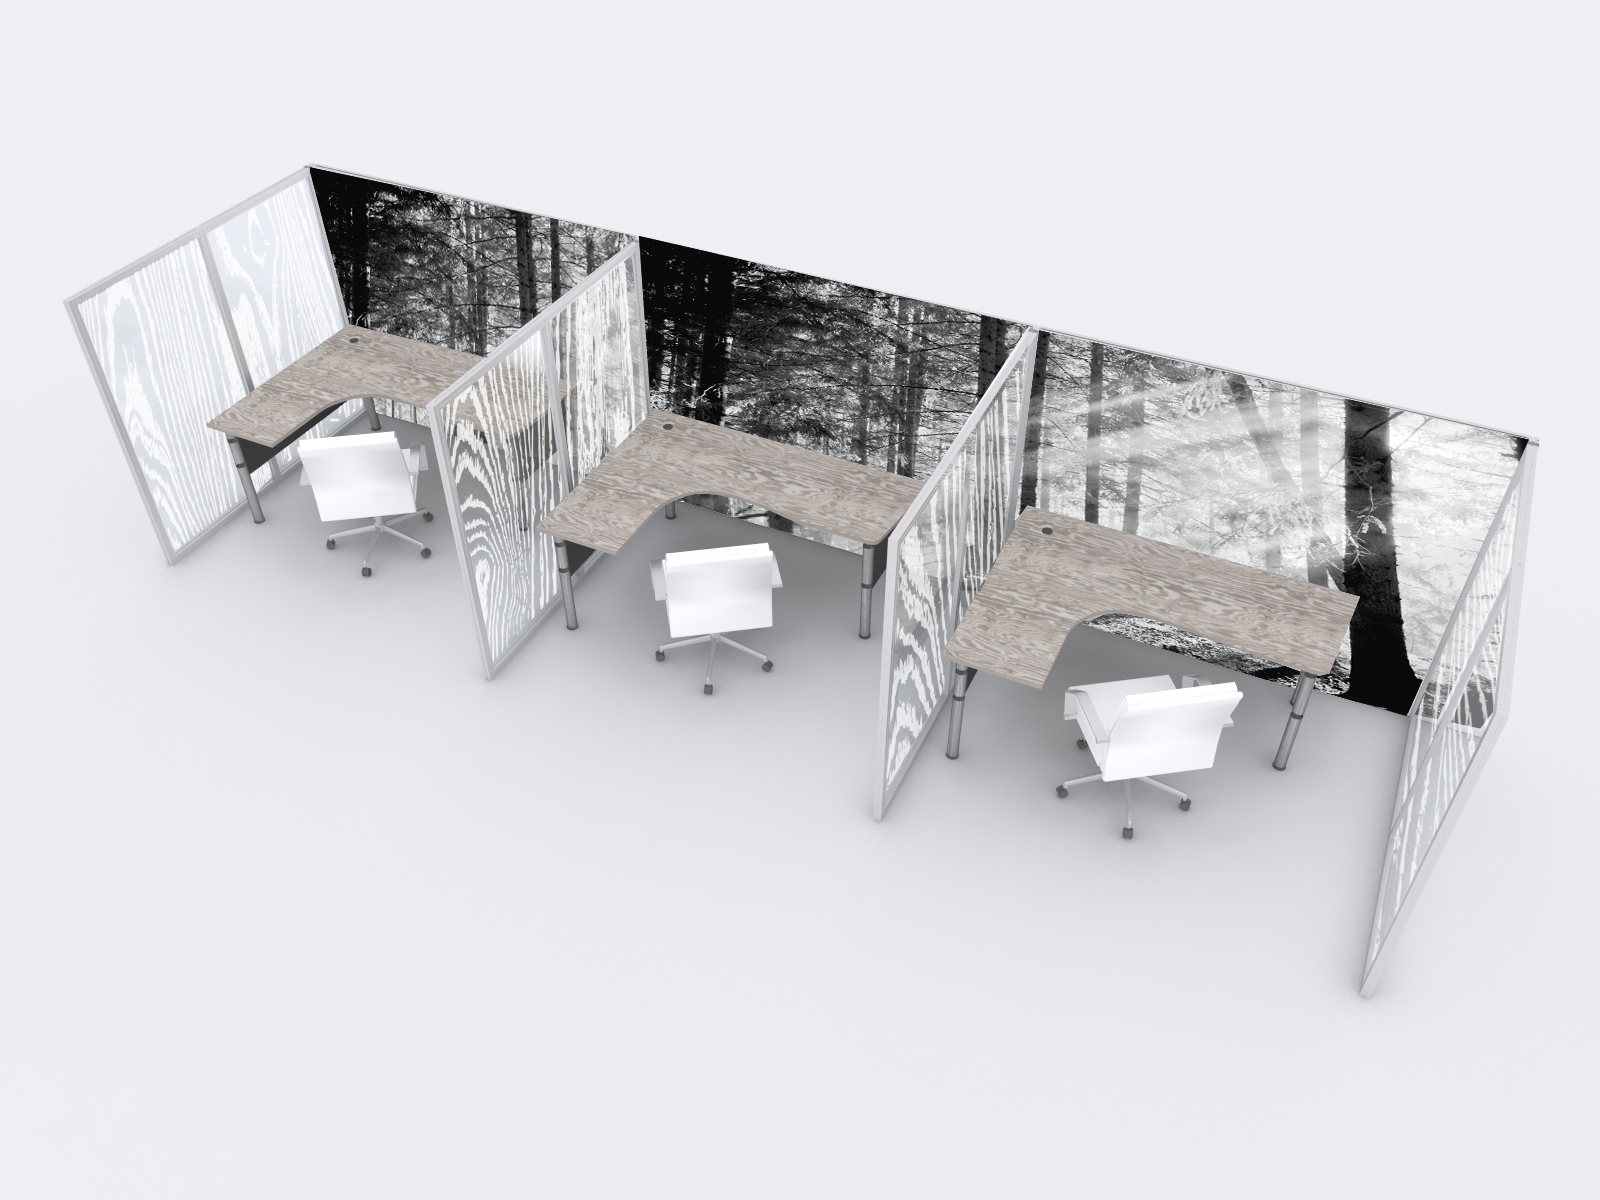 050520-Office-Pod-Triple-Modul-38-and-Gravitee-46x72-View-20000bark